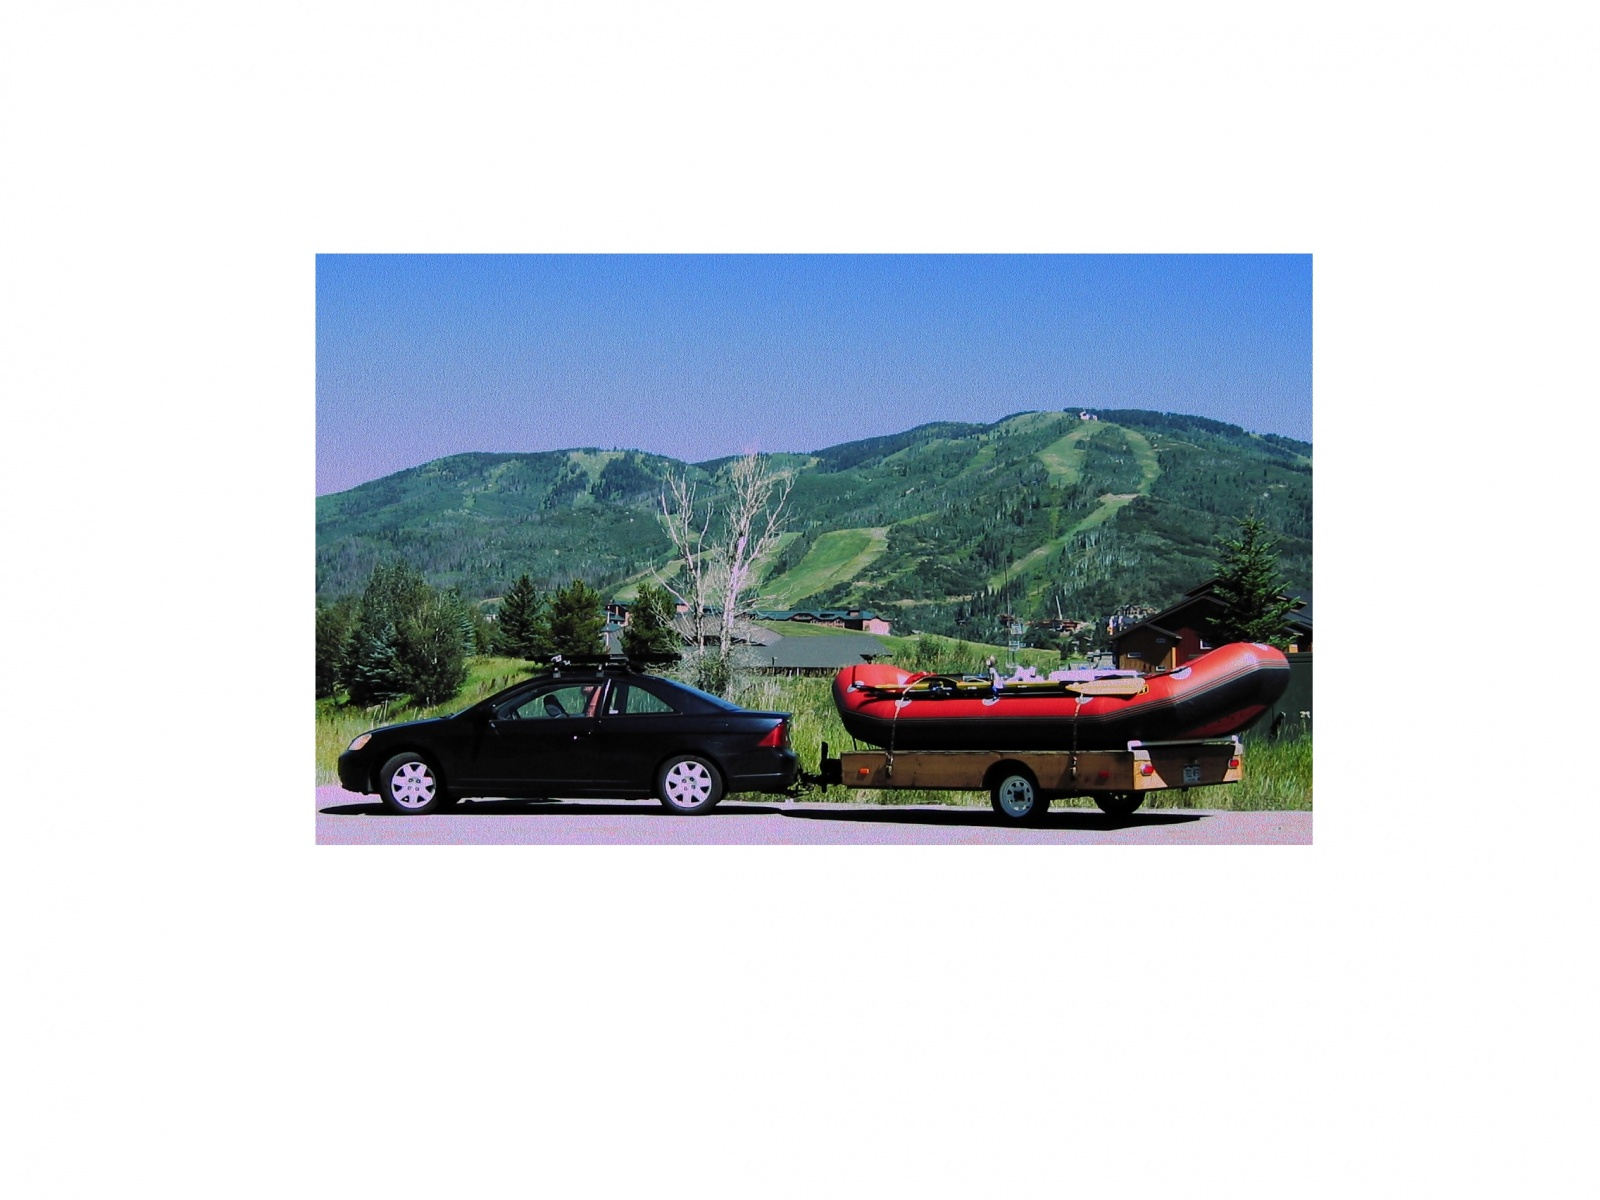 Click image for larger version  Name:civic tow raft.jpg Views:324 Size:364.7 KB ID:3576